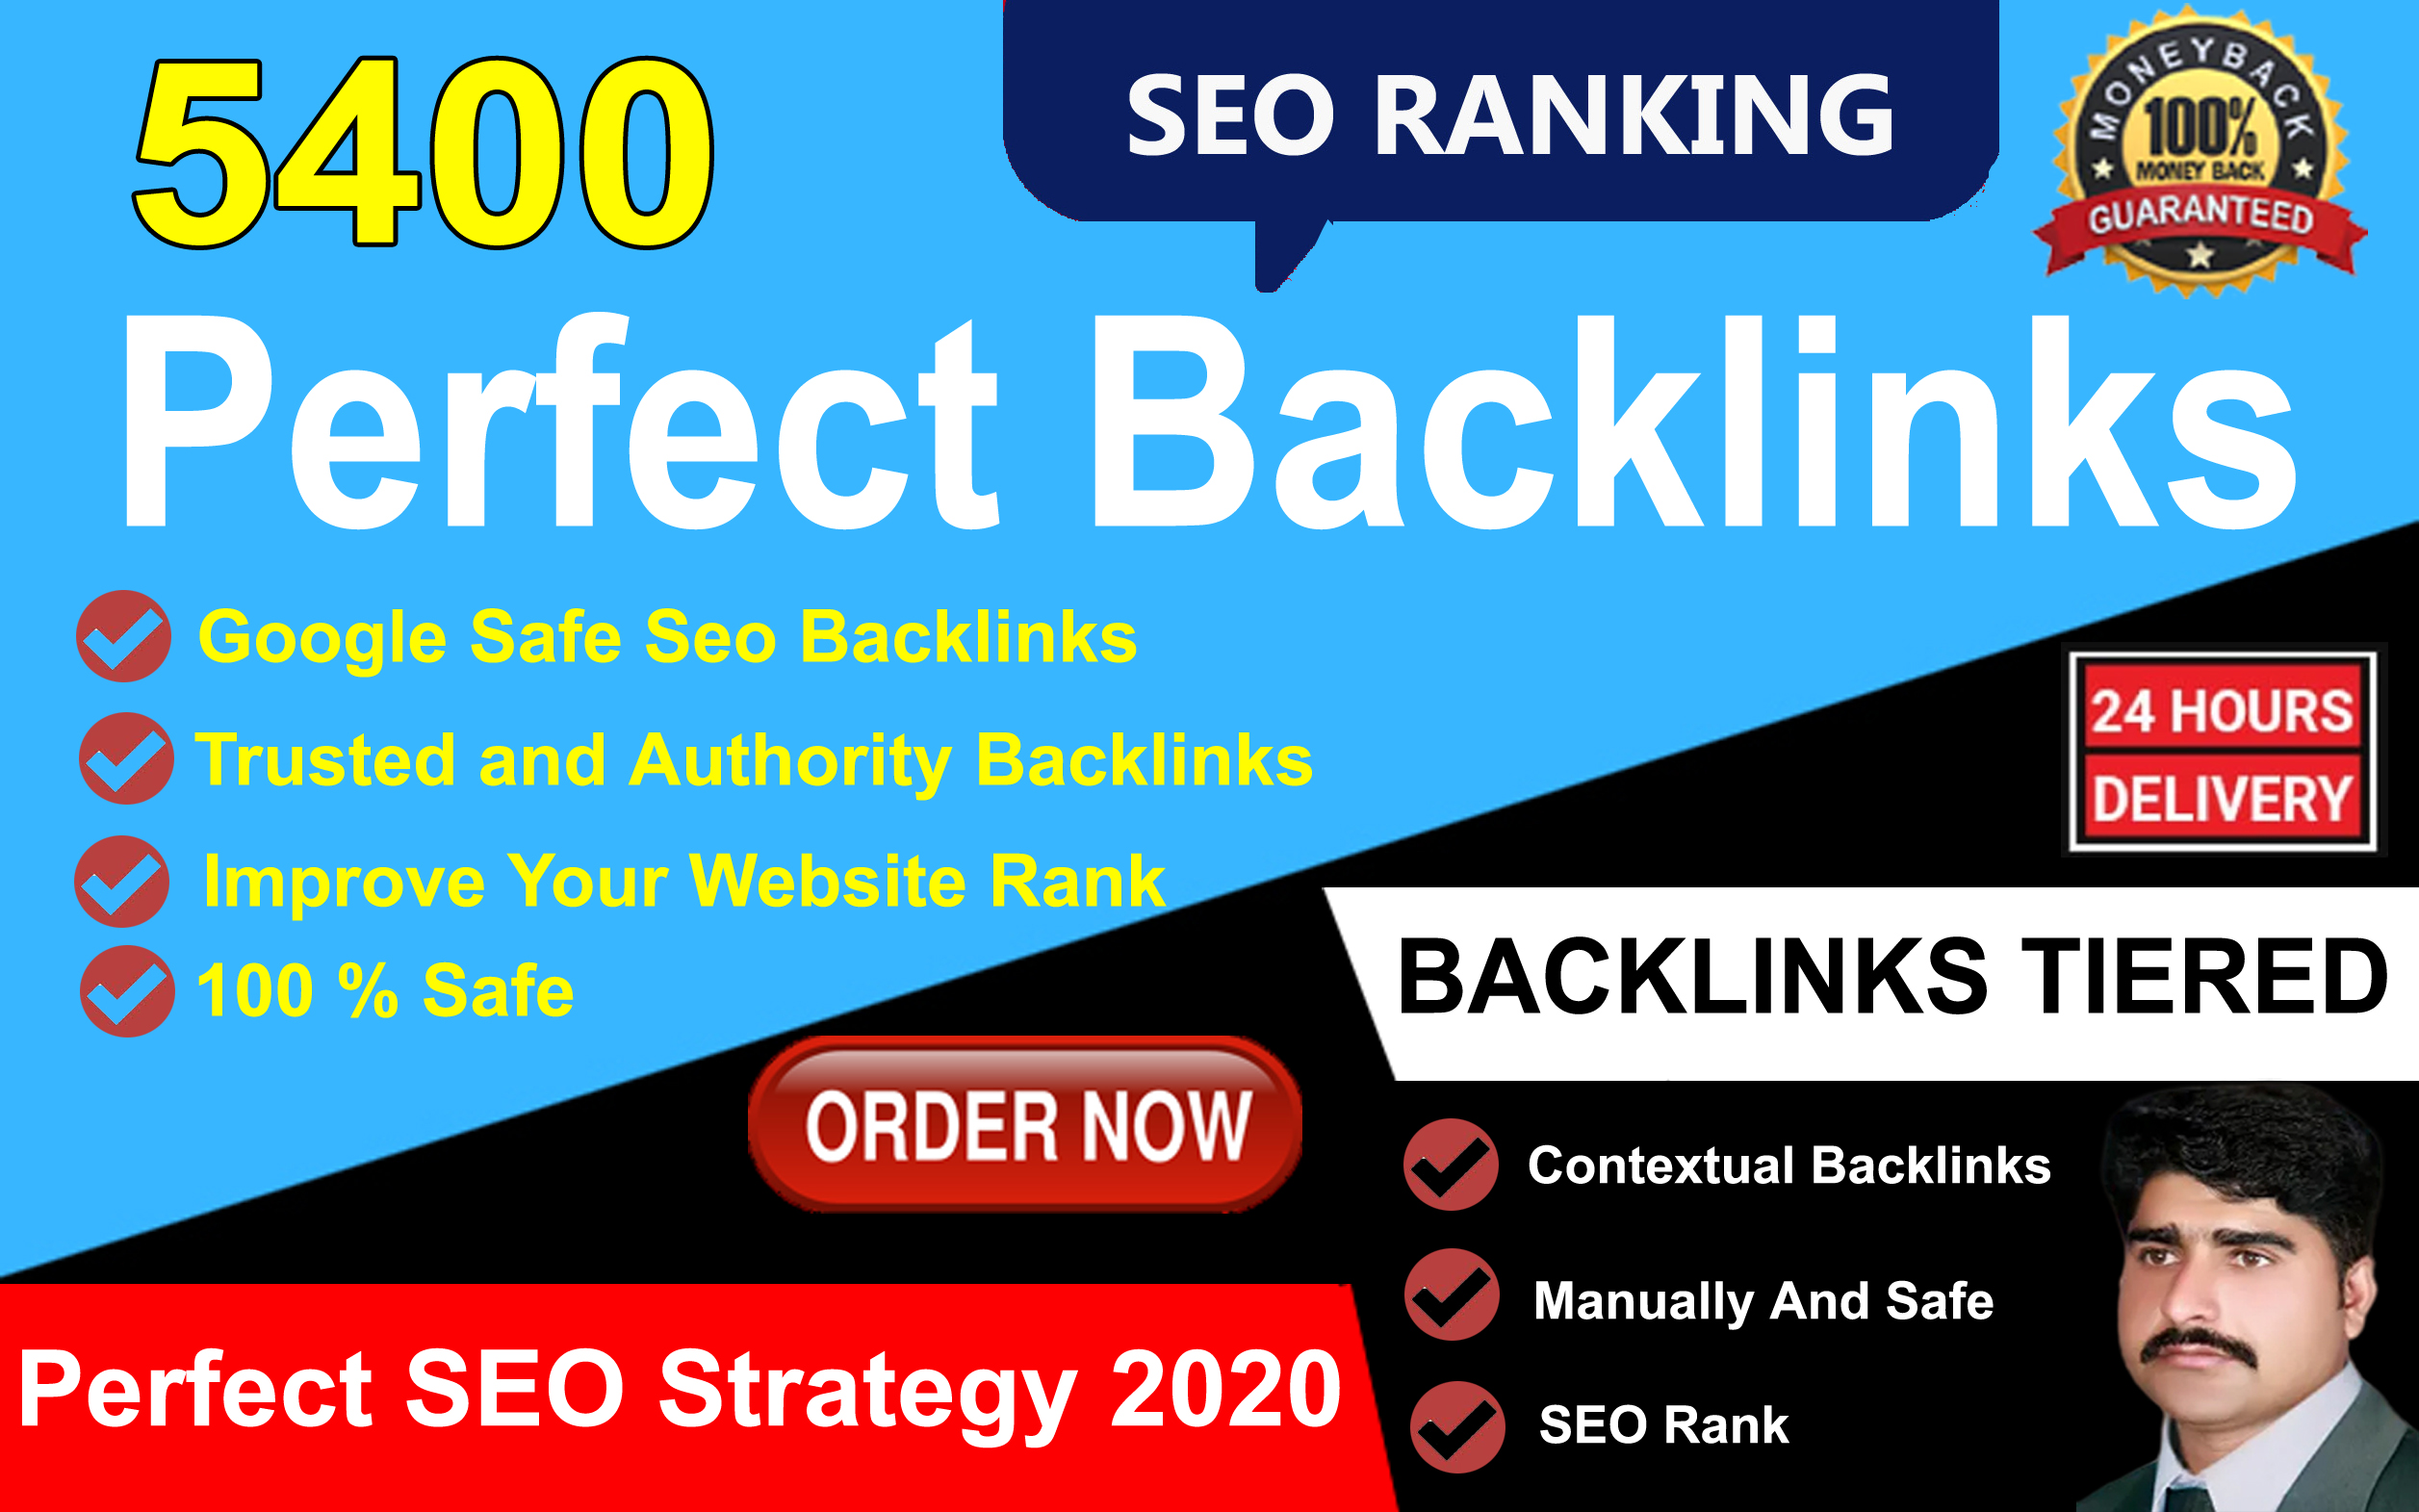 I will create 5400 powerful contextual backlinks for SEO website ranking